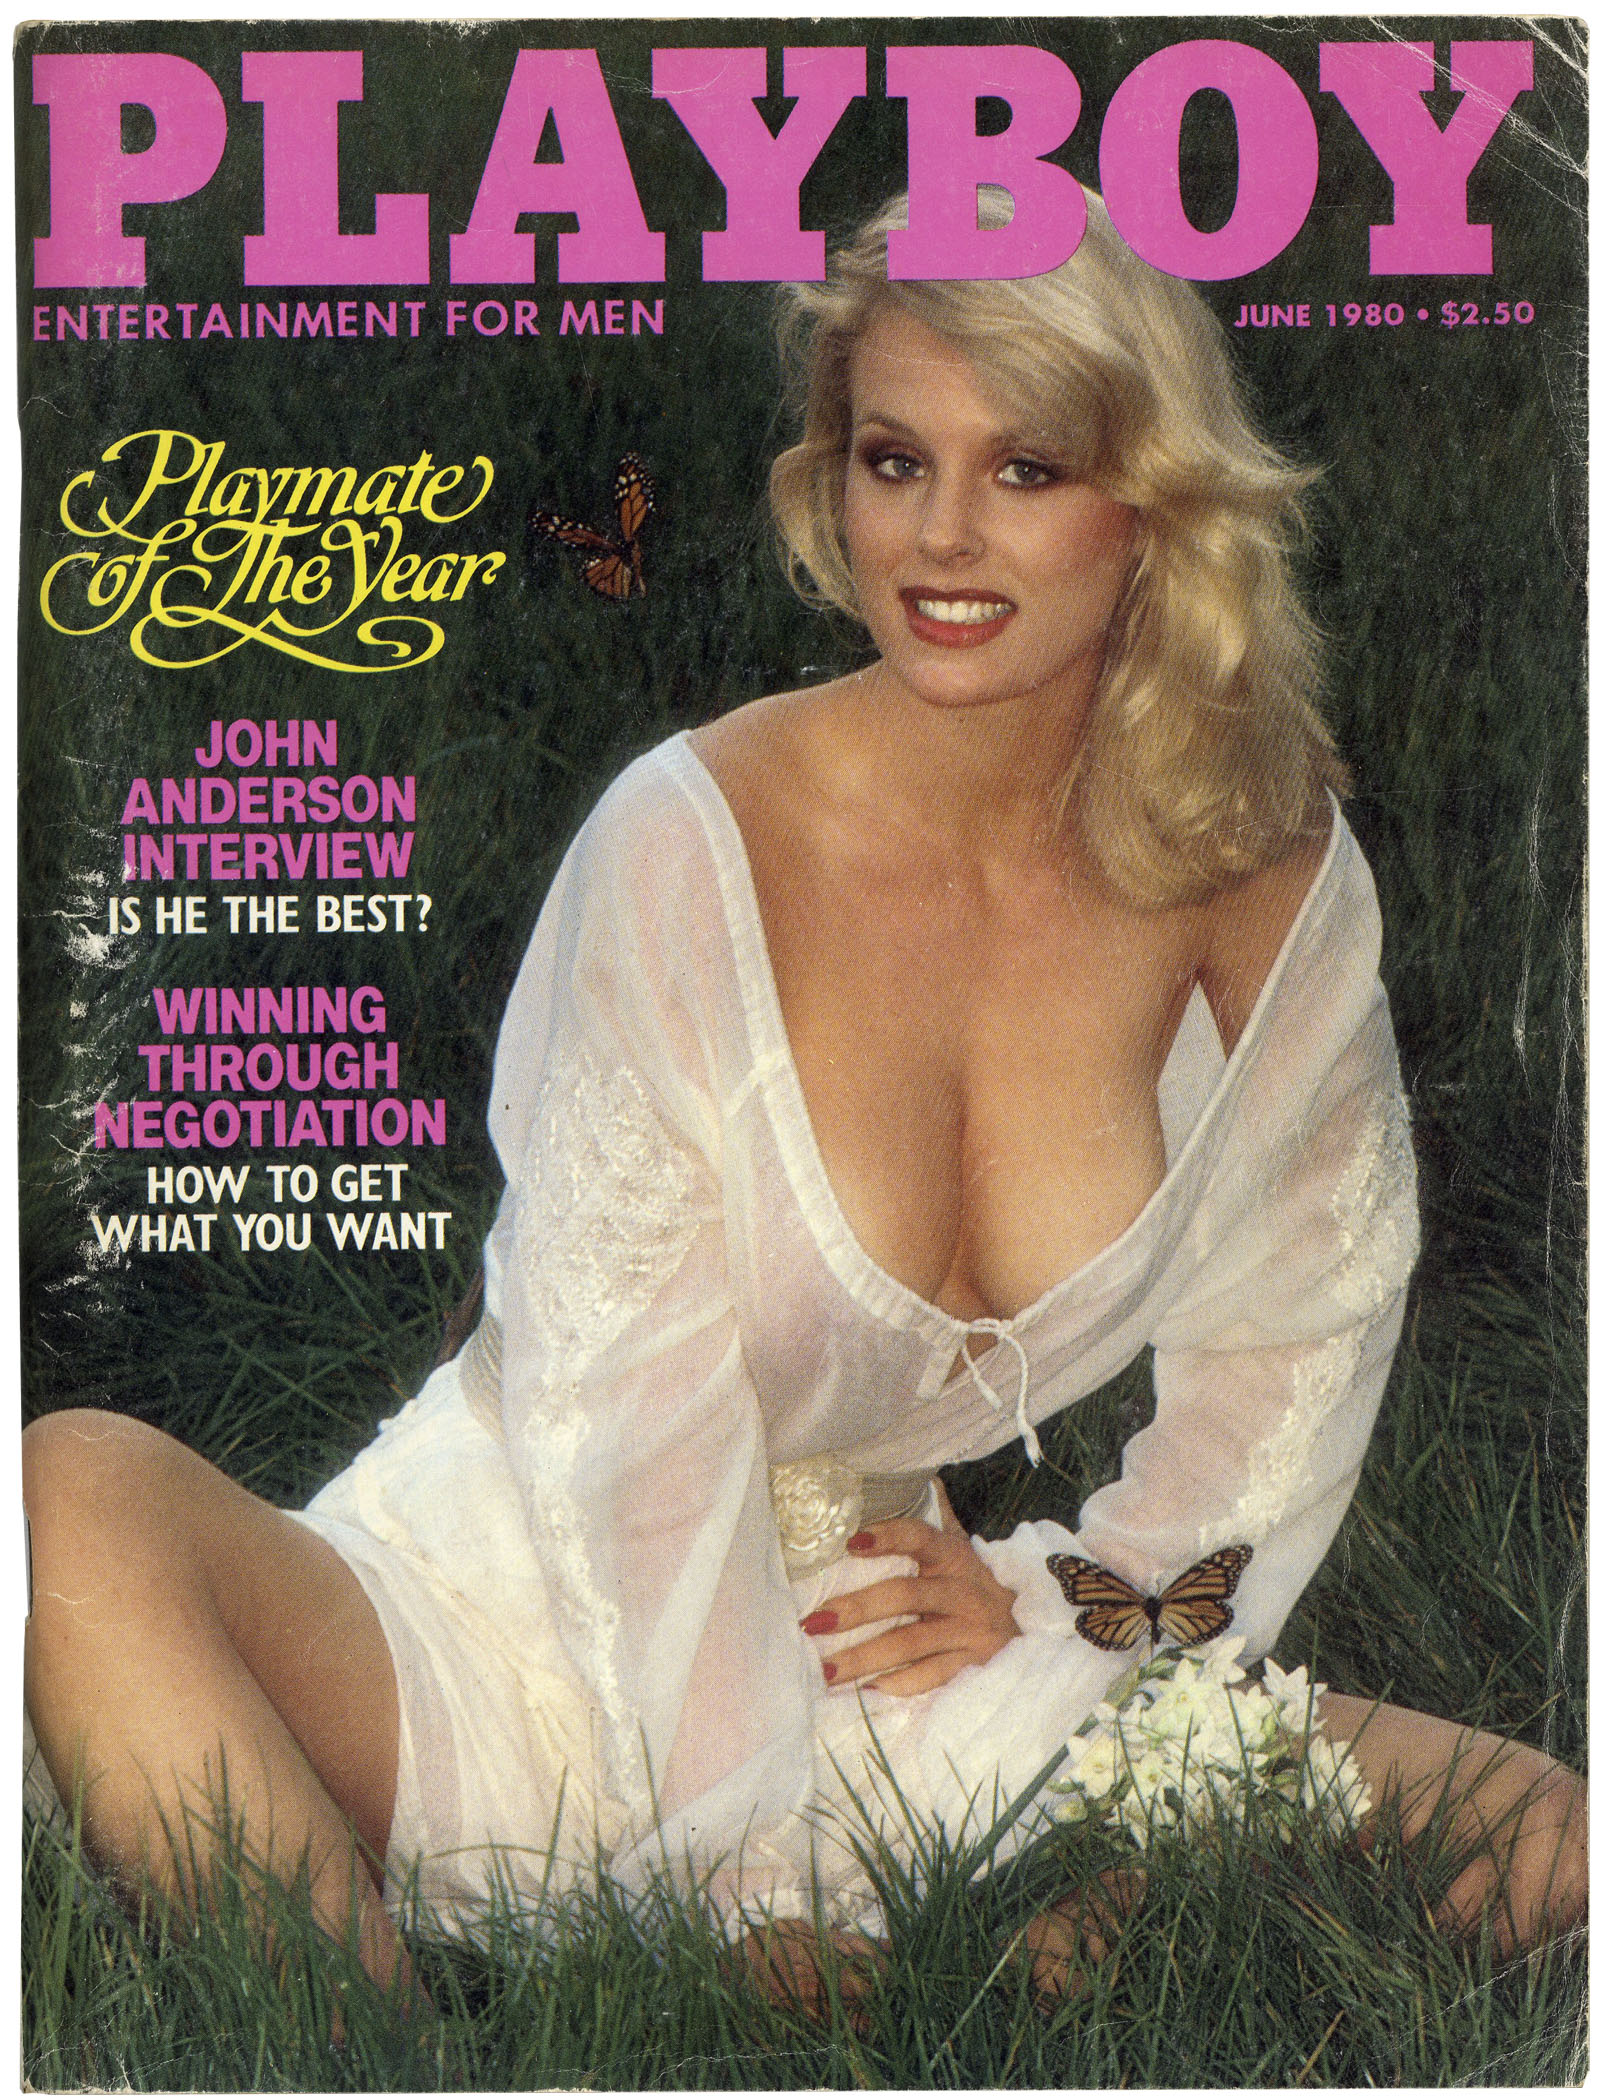 That would Dorothy stratten playmate of the year solved